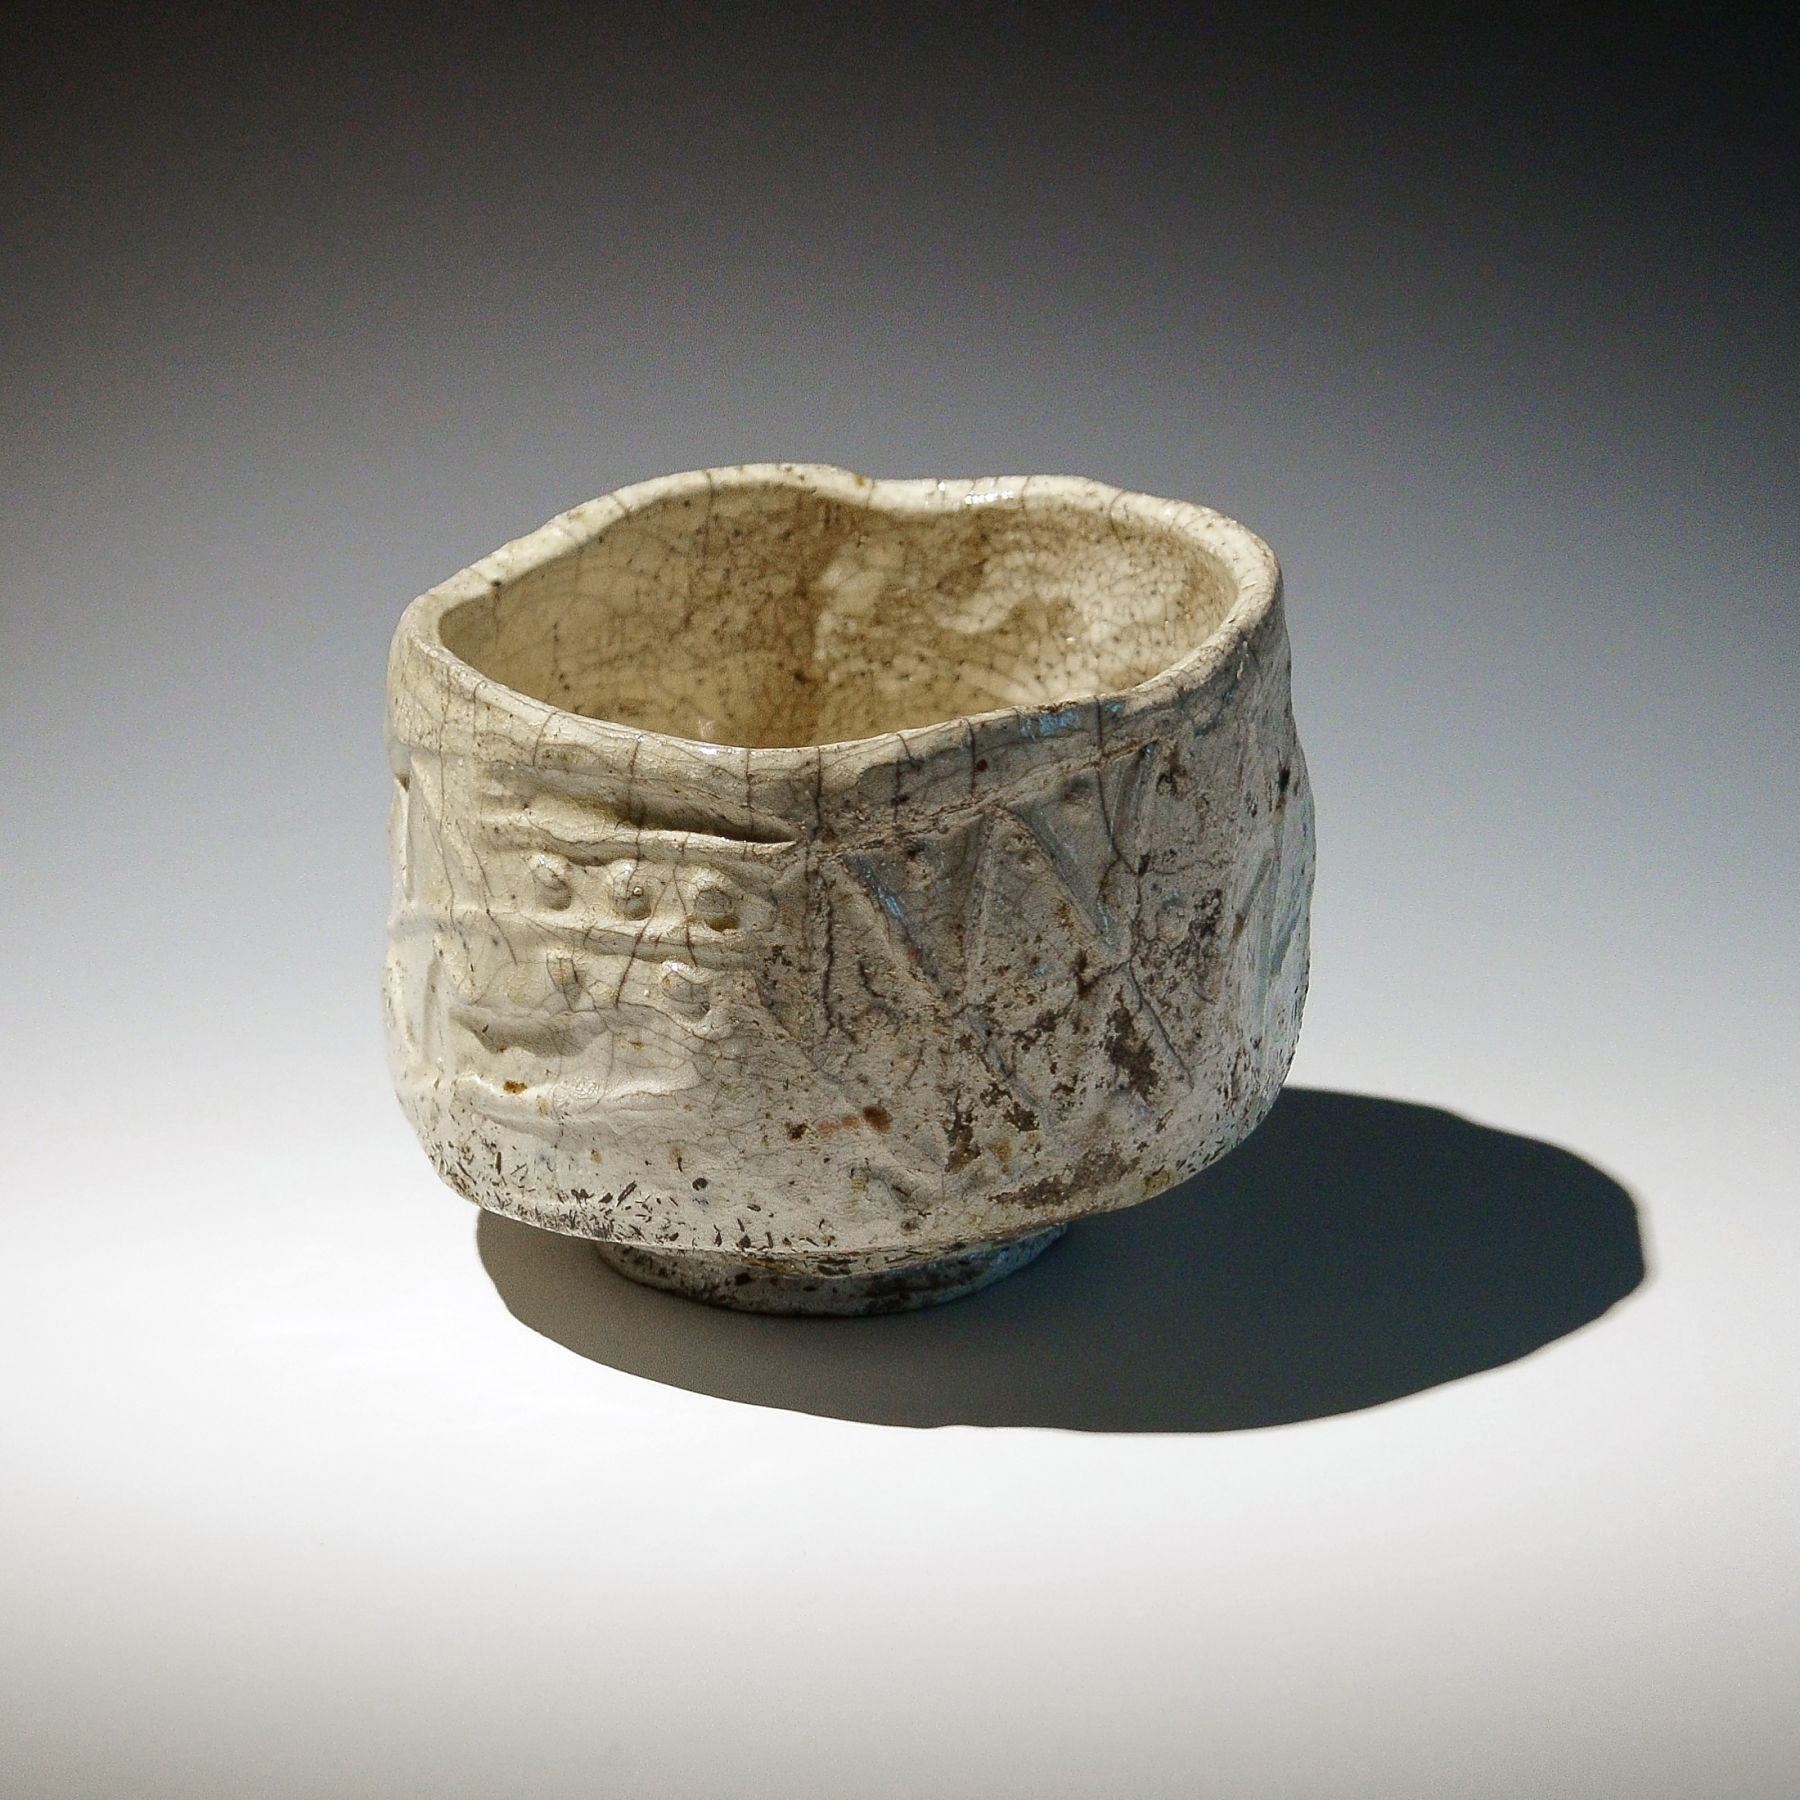 Tanimoto Kei (b. 1948), Large Iga white-glazed raku-style straight-sided teabowl with irregular mouth and carved patterning